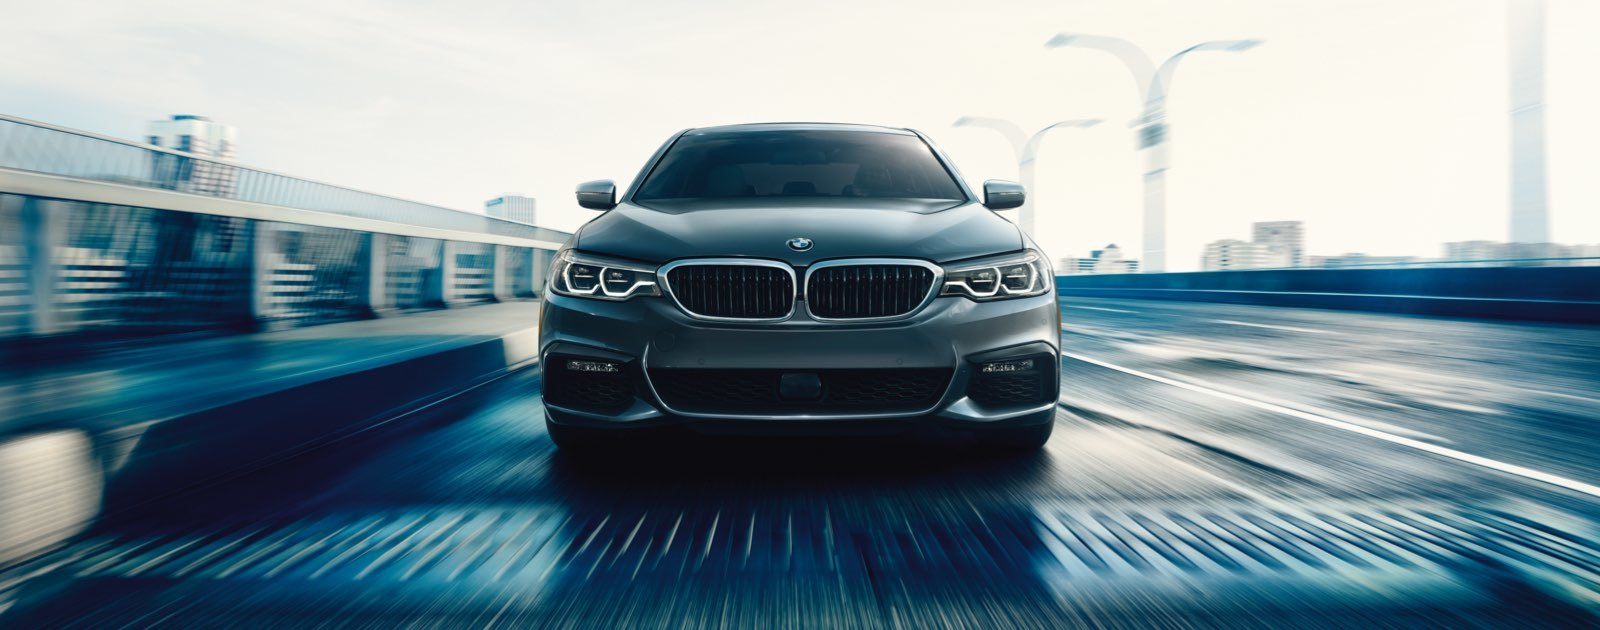 2017 BMW 5 Series Financing near Olympia Fields, IL